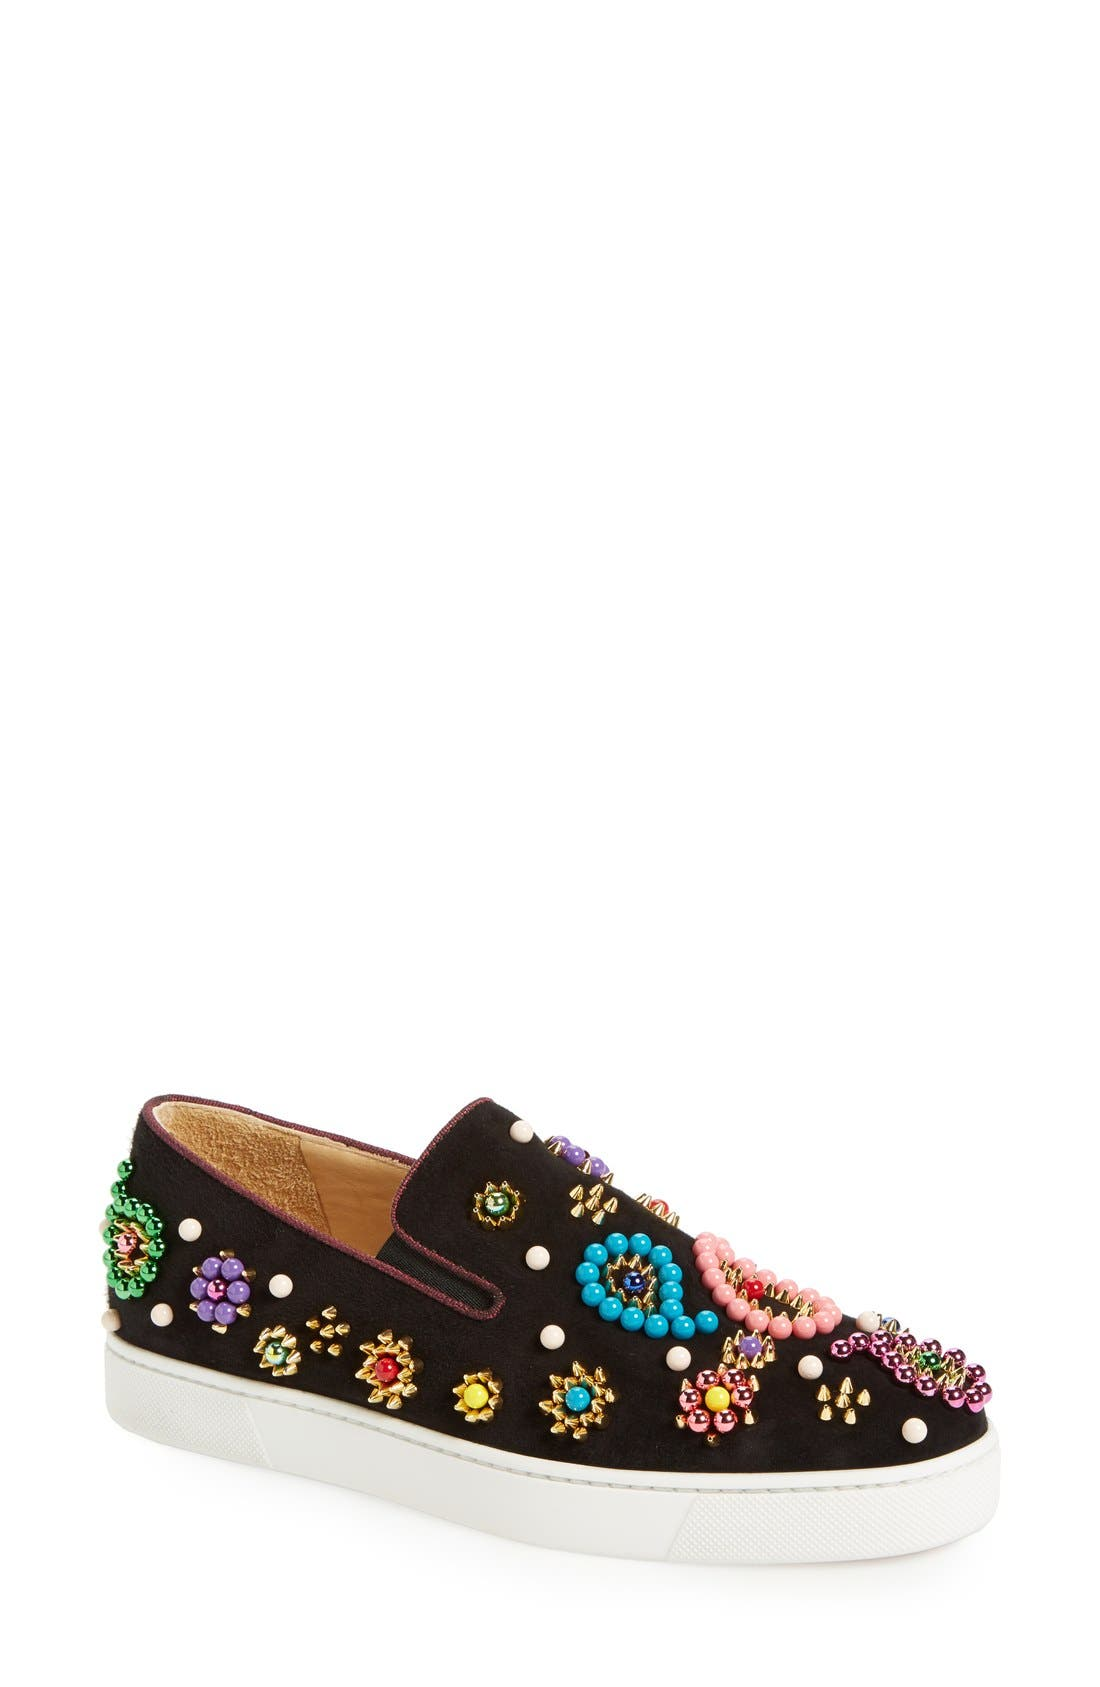 CHRISTIAN LOUBOUTIN 'Boat Candy' Slip-On Sneaker, Main, color, 001